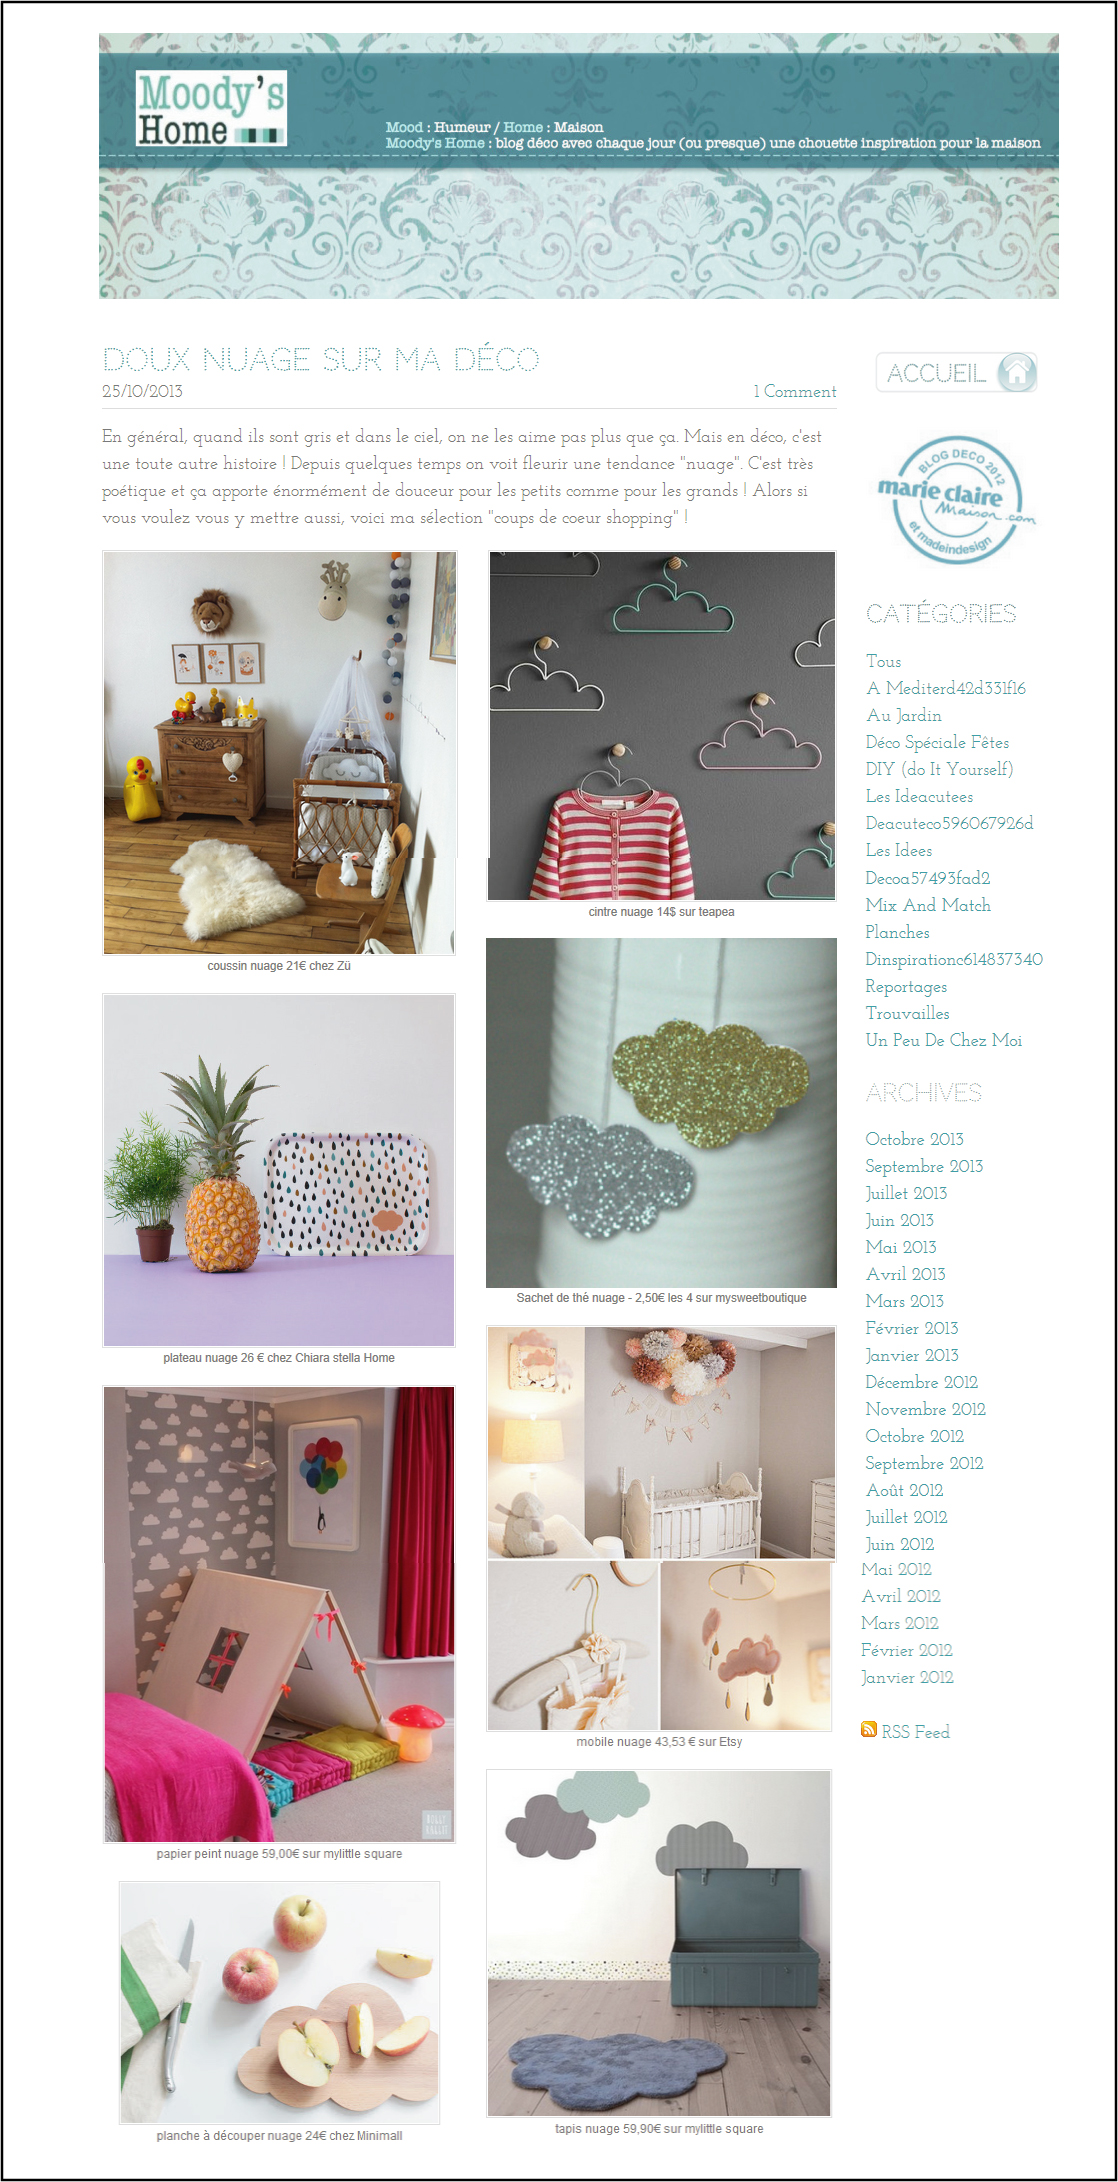 moodys home blog marie claire 2012-2013 selection nuage